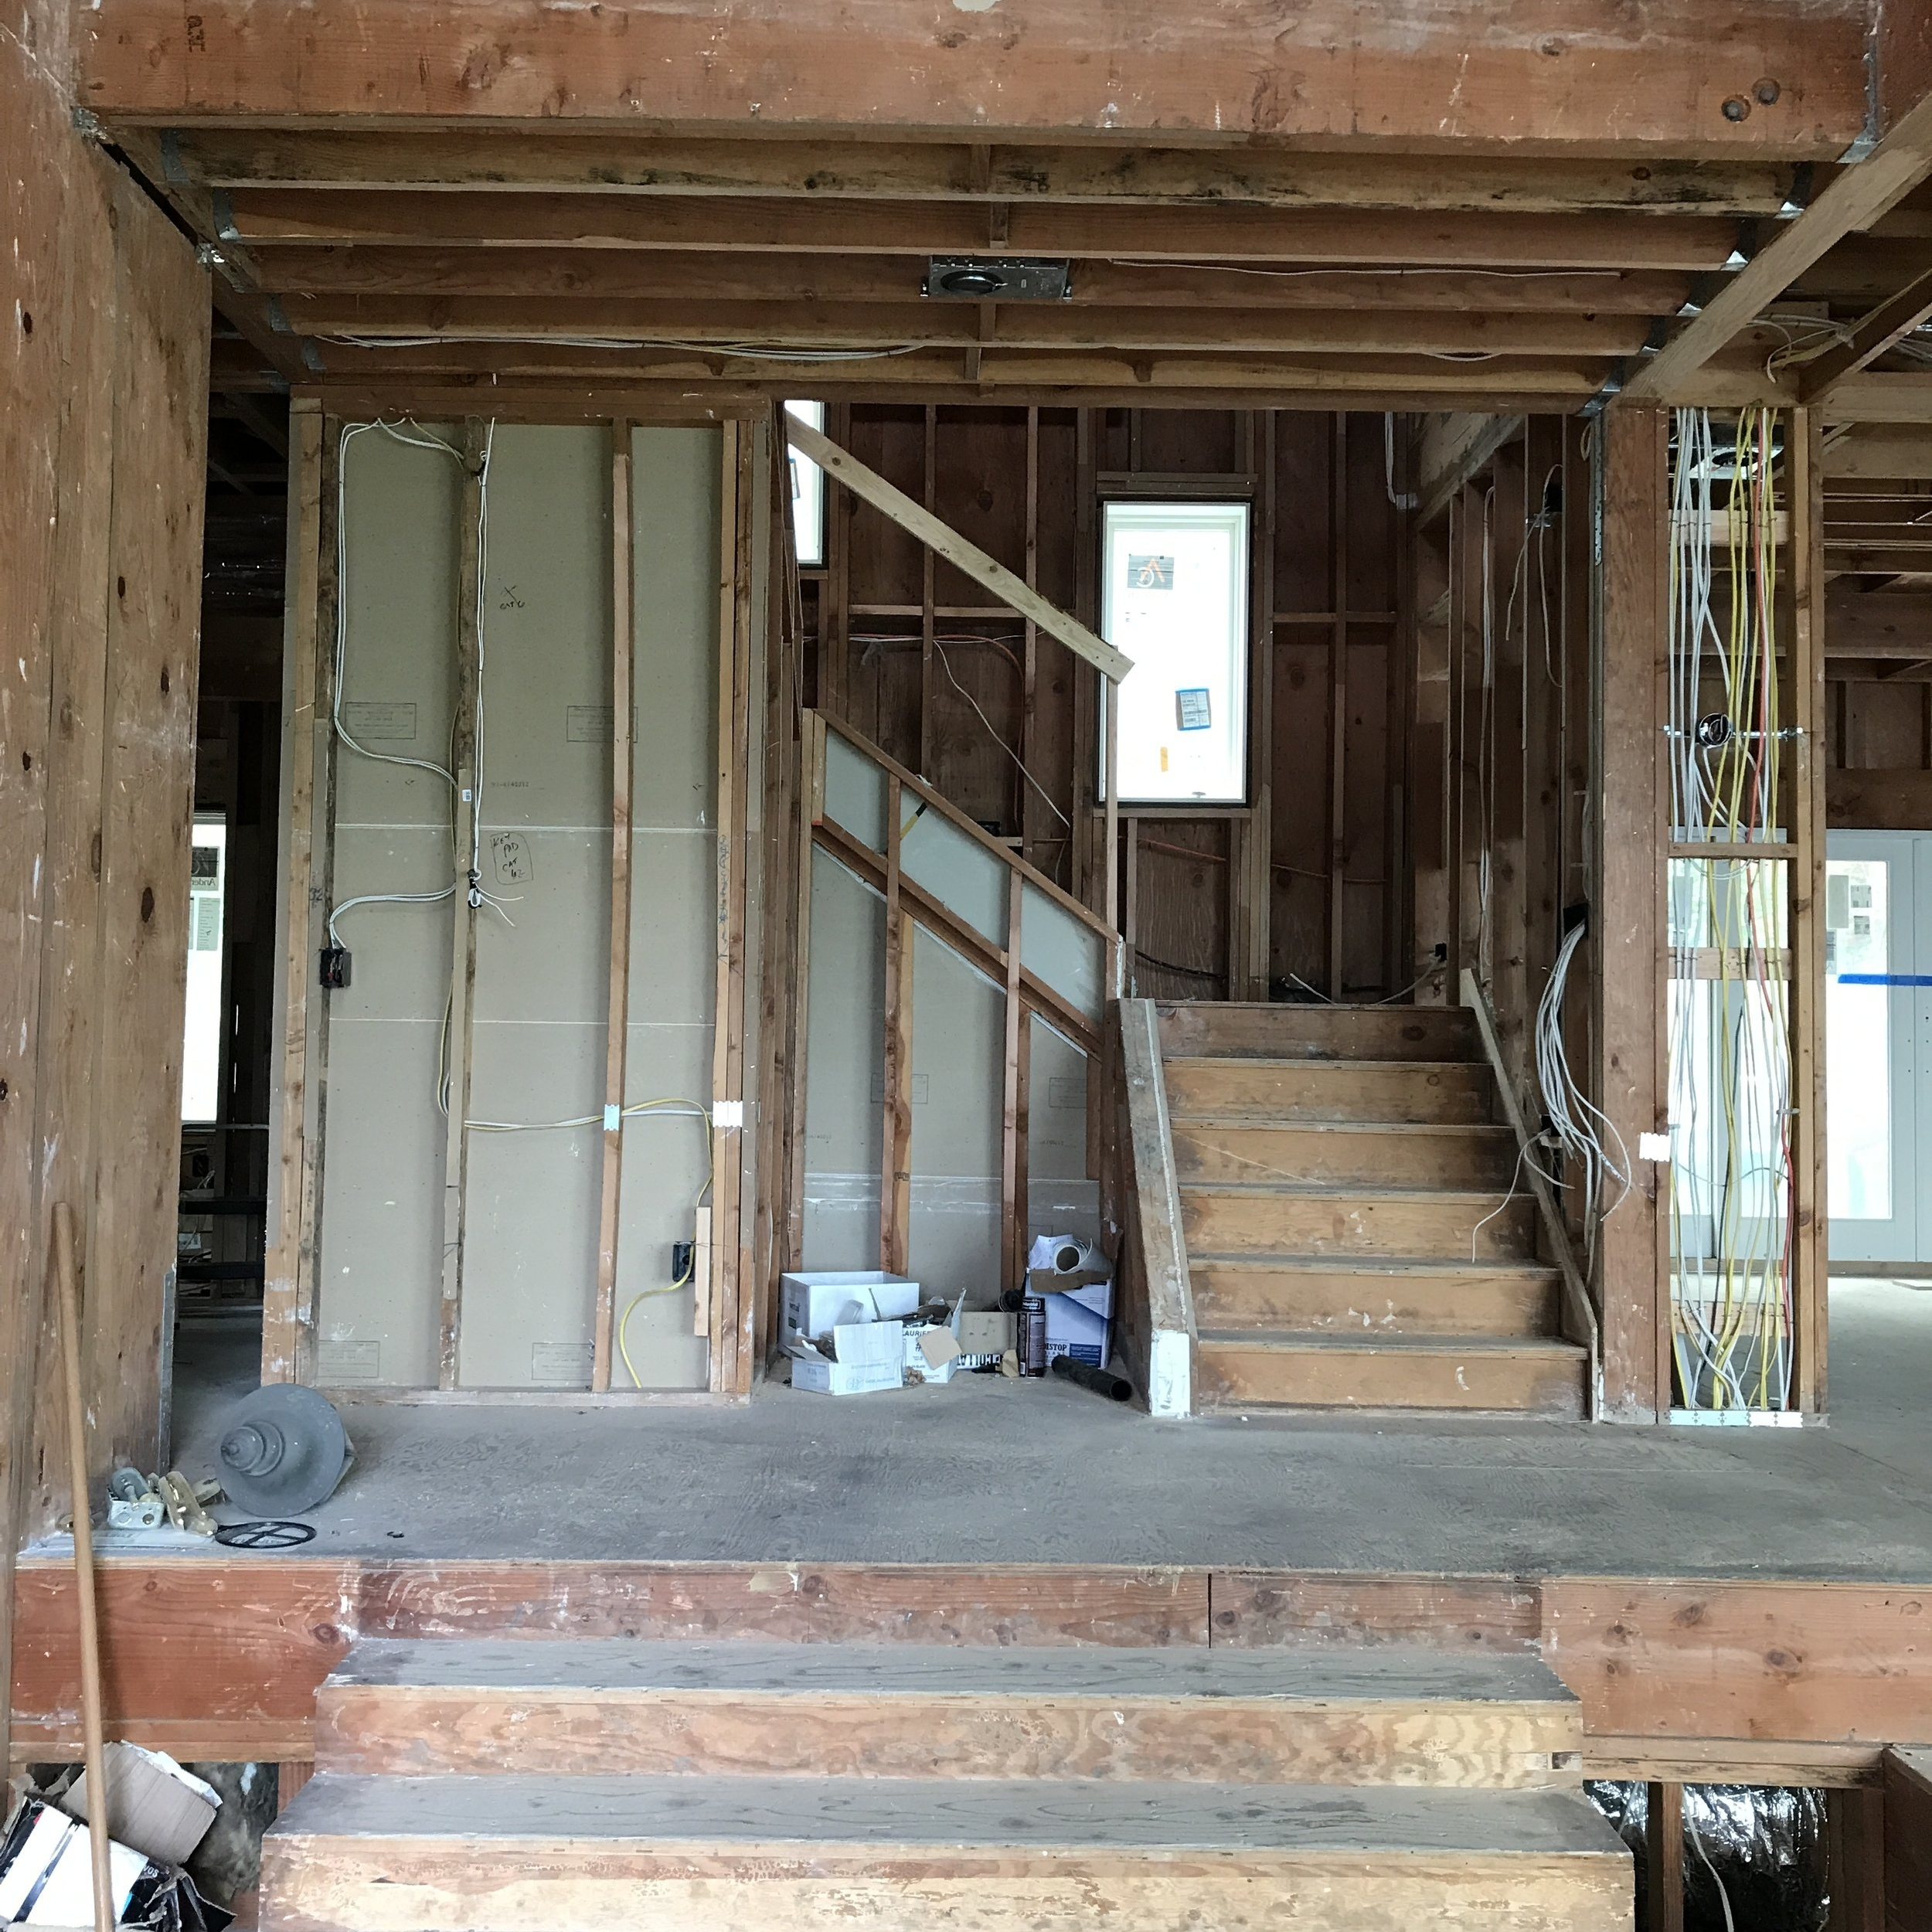 The existing entry and stair after finishes removed.